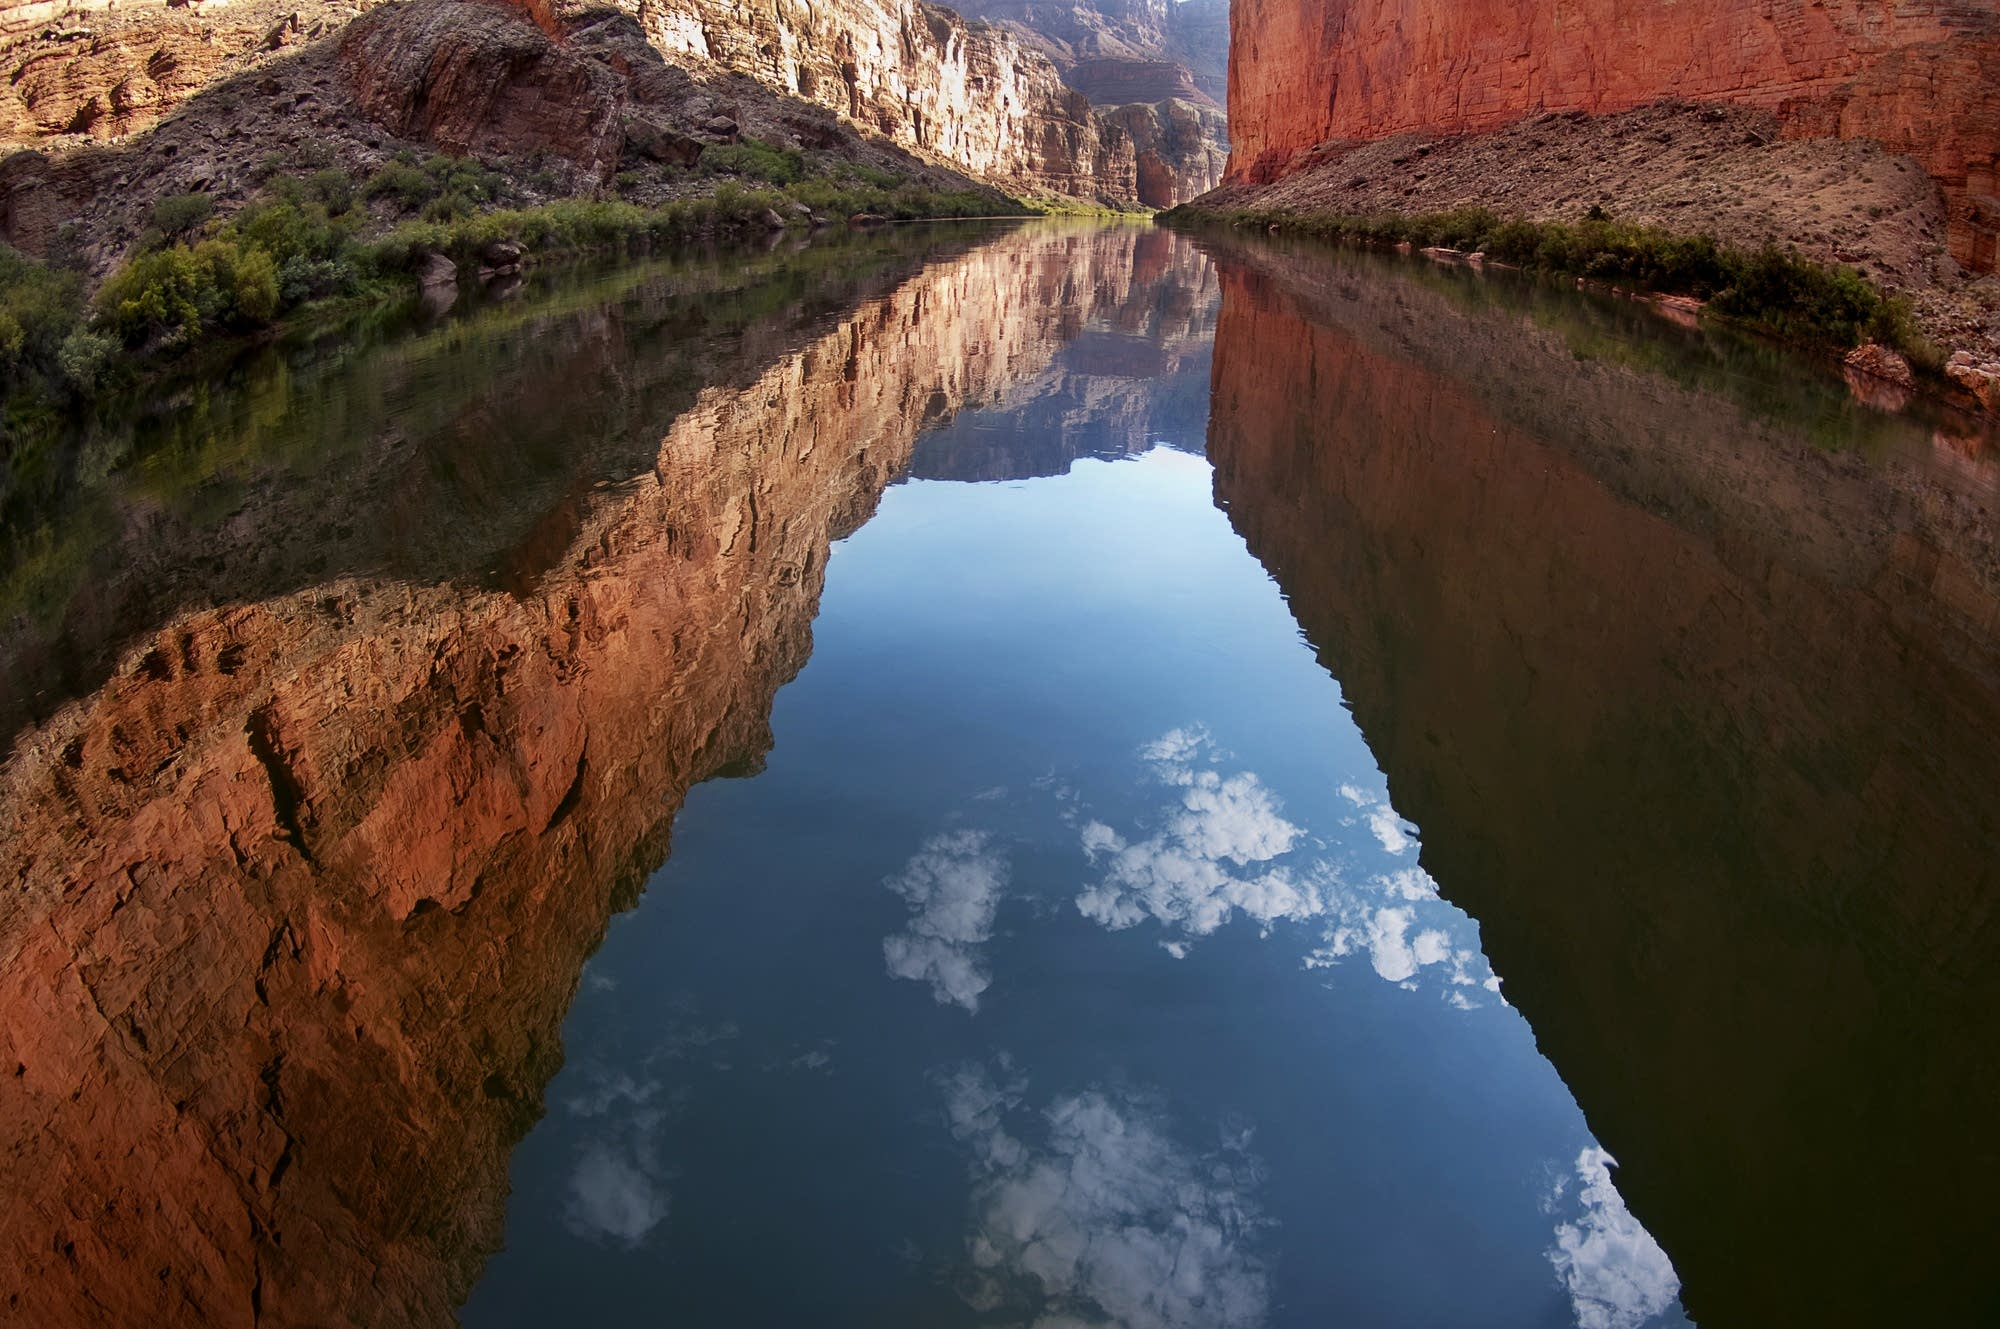 Colorado River flows through Marble Canyon.